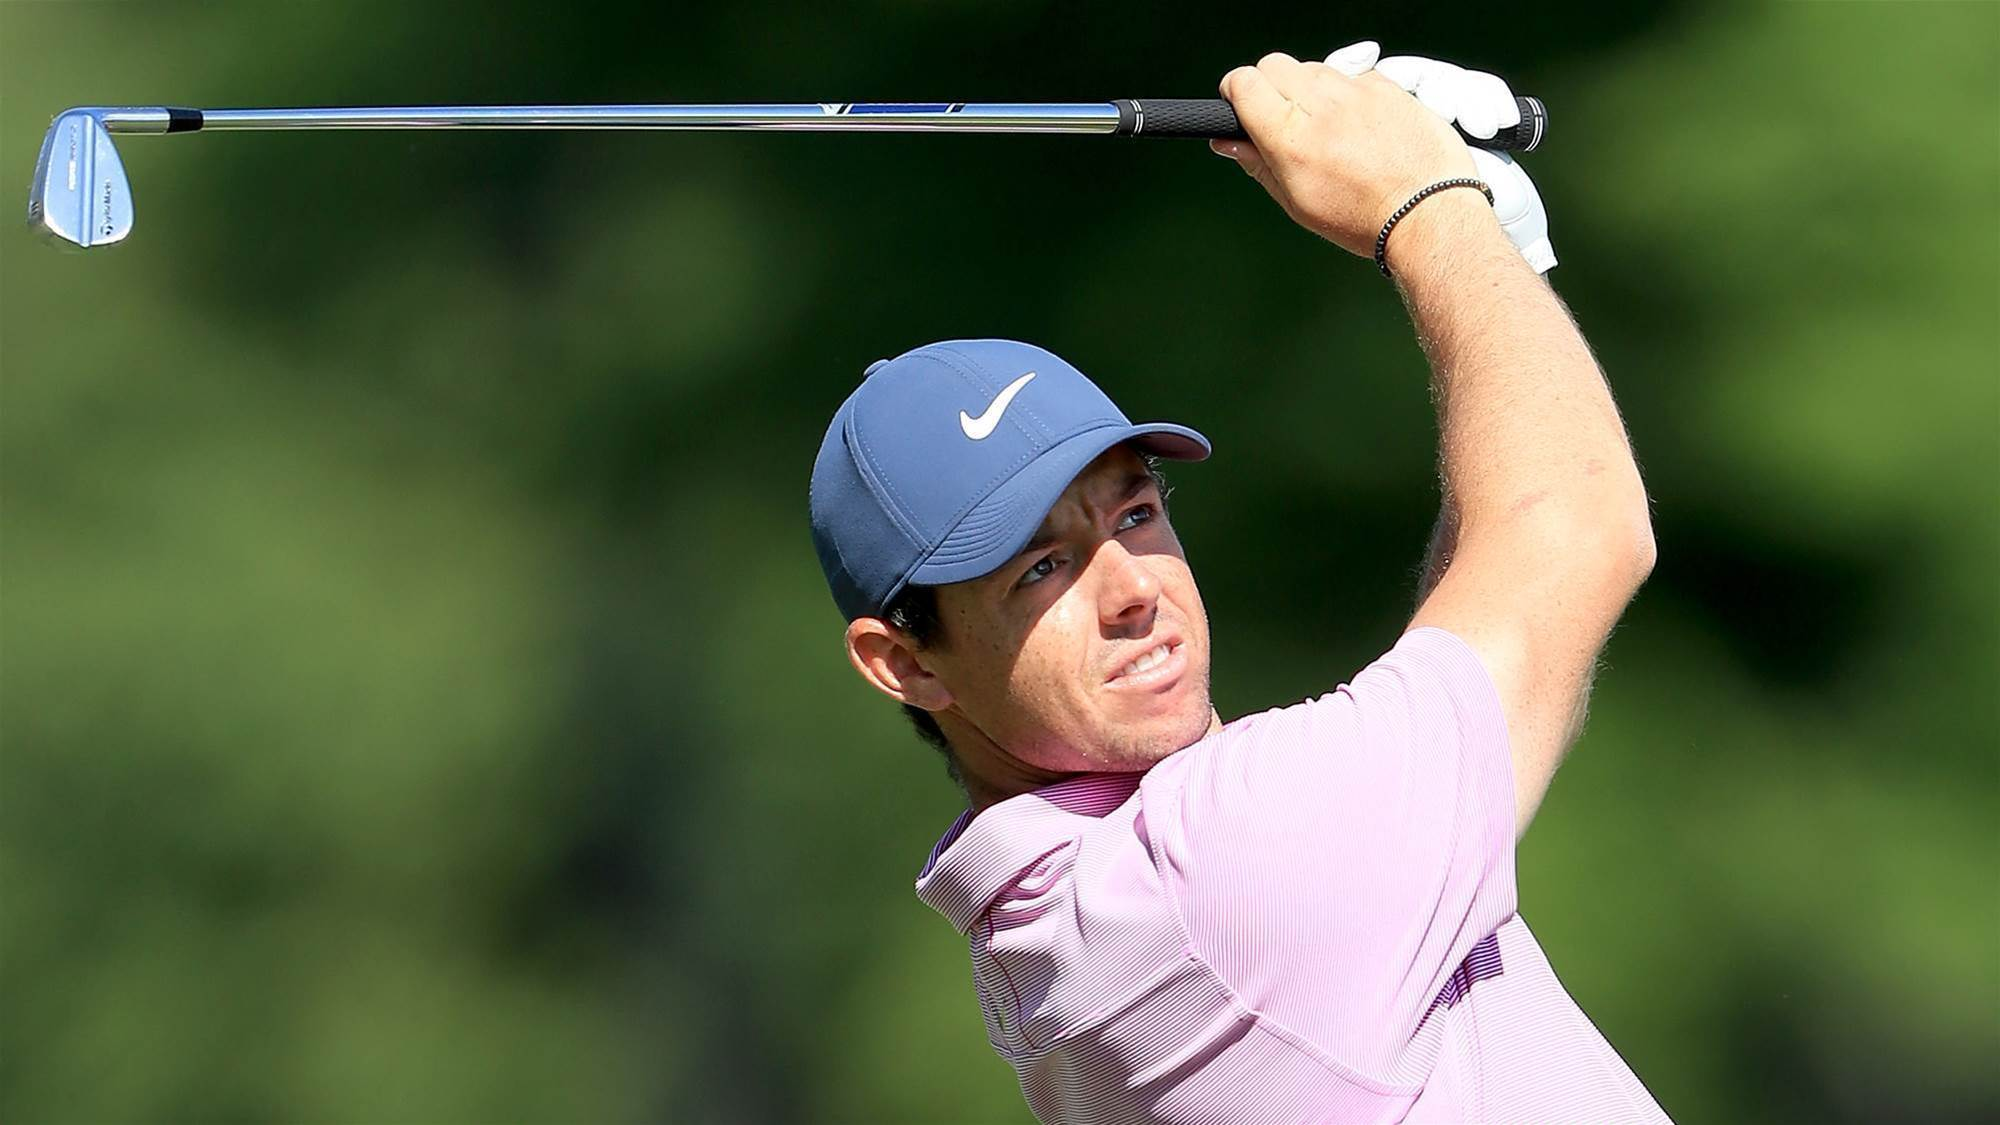 McIlroy critical of USGA ahead of US Open